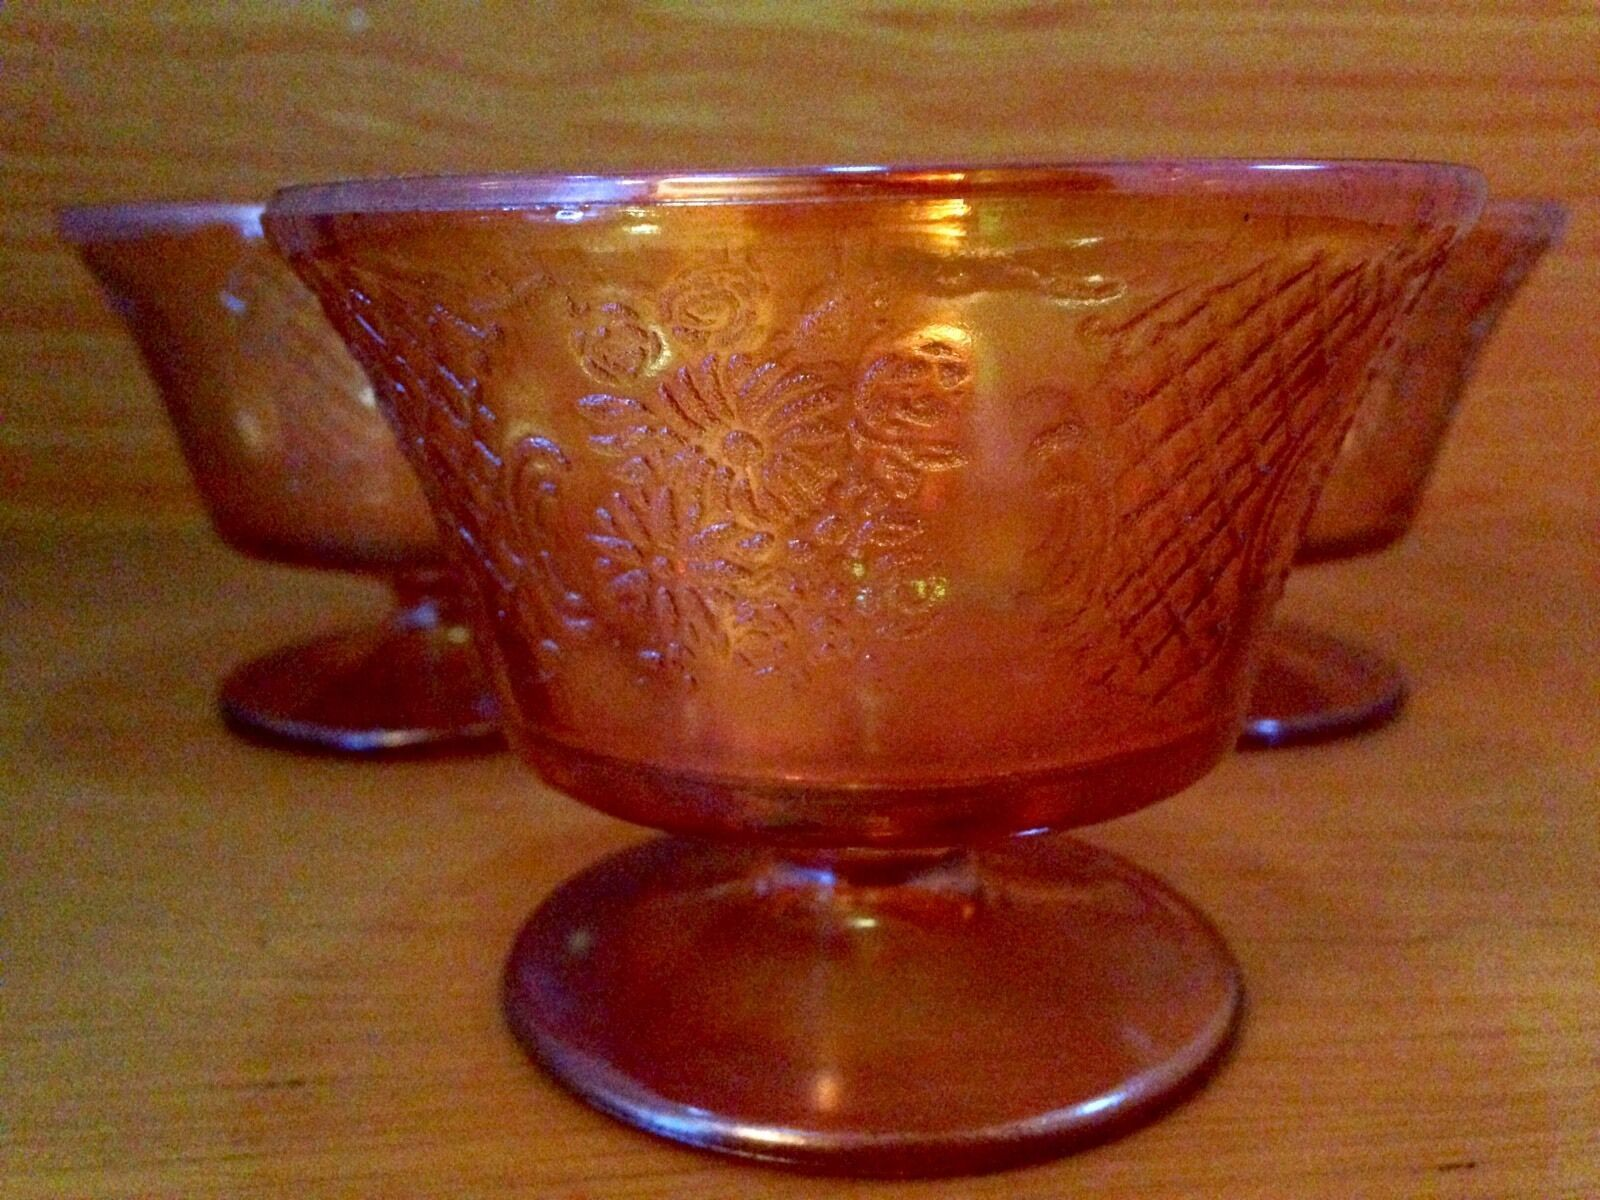 Vintage 3 pc. Carnival Glass Sherbet Ice Cream Dish Set image 3